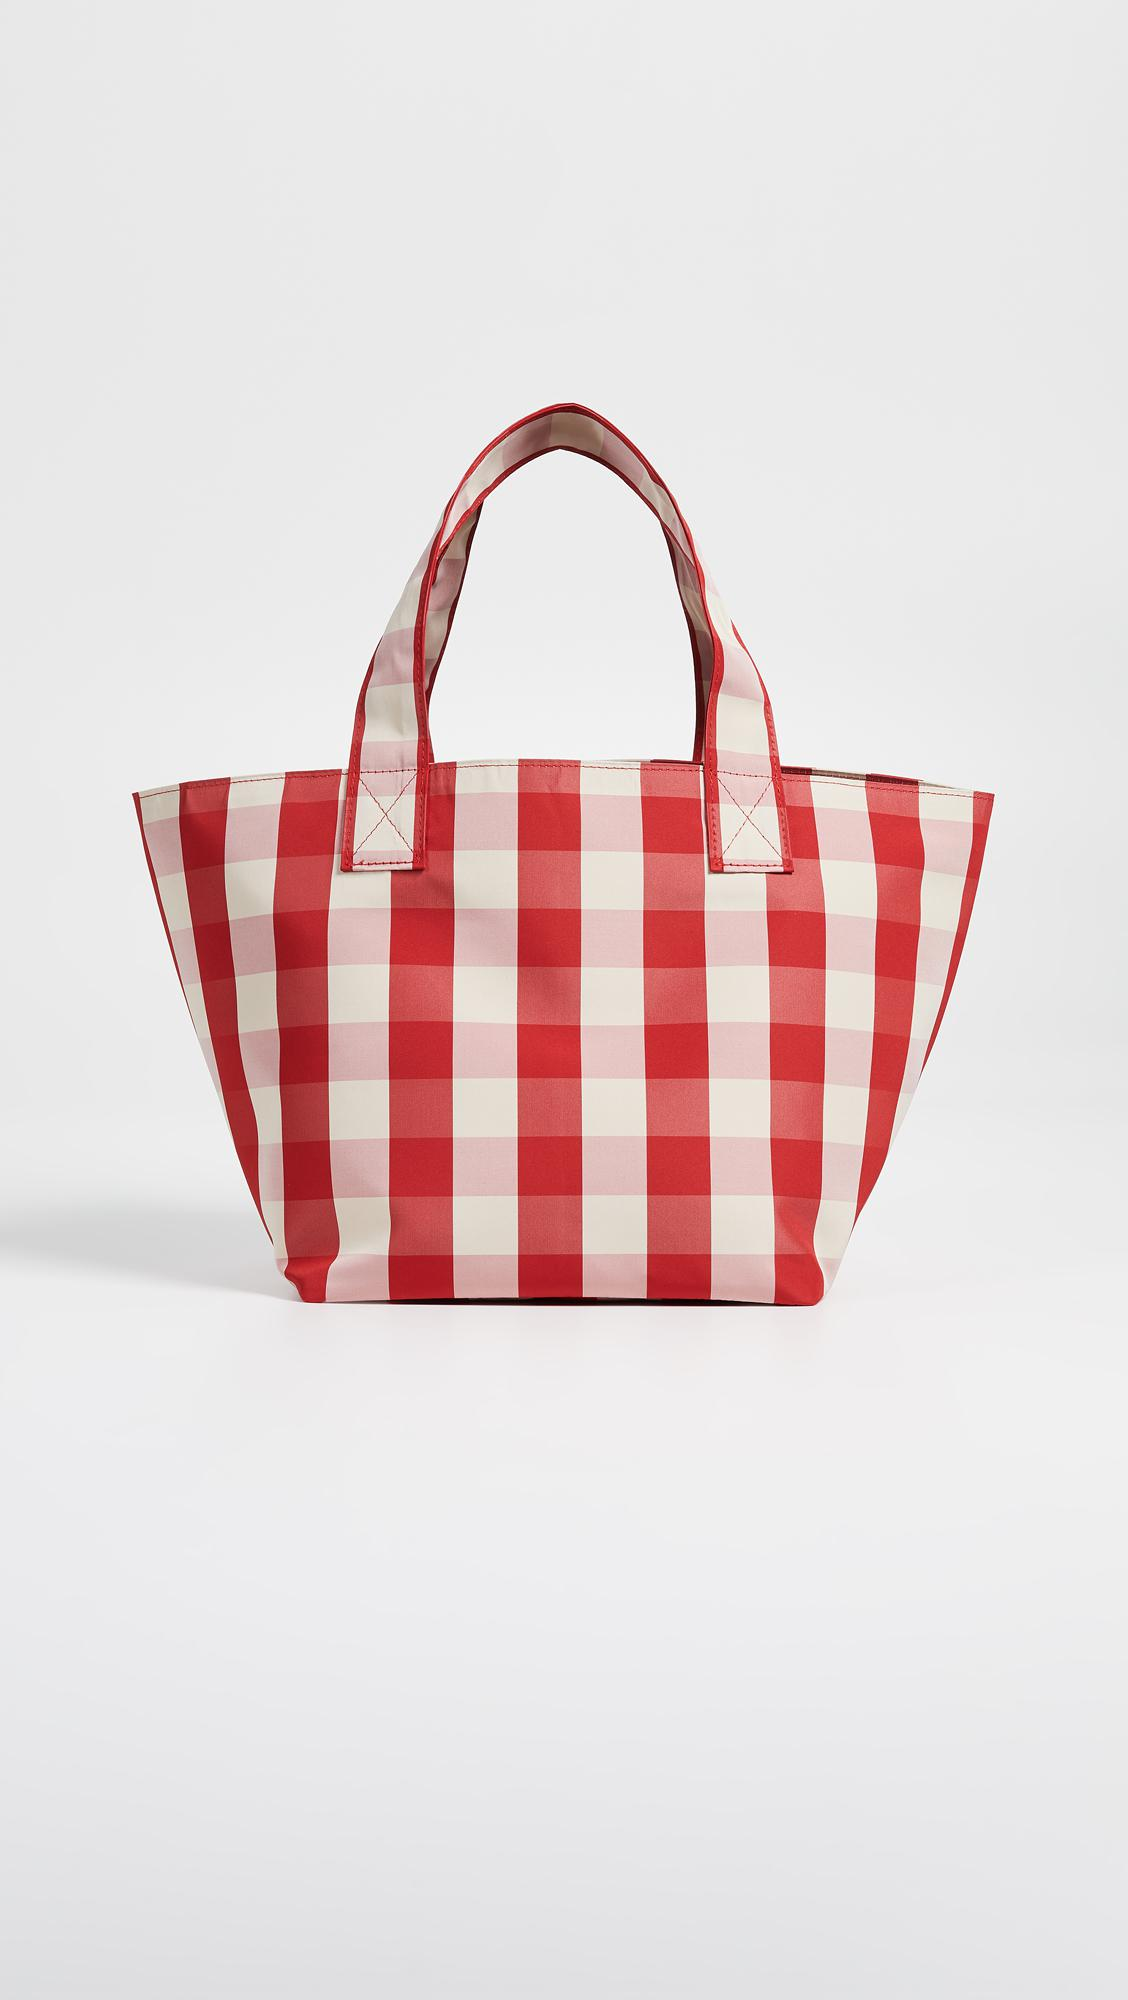 blue and white gingham grocery small tote bag Trademark VoSqGZ